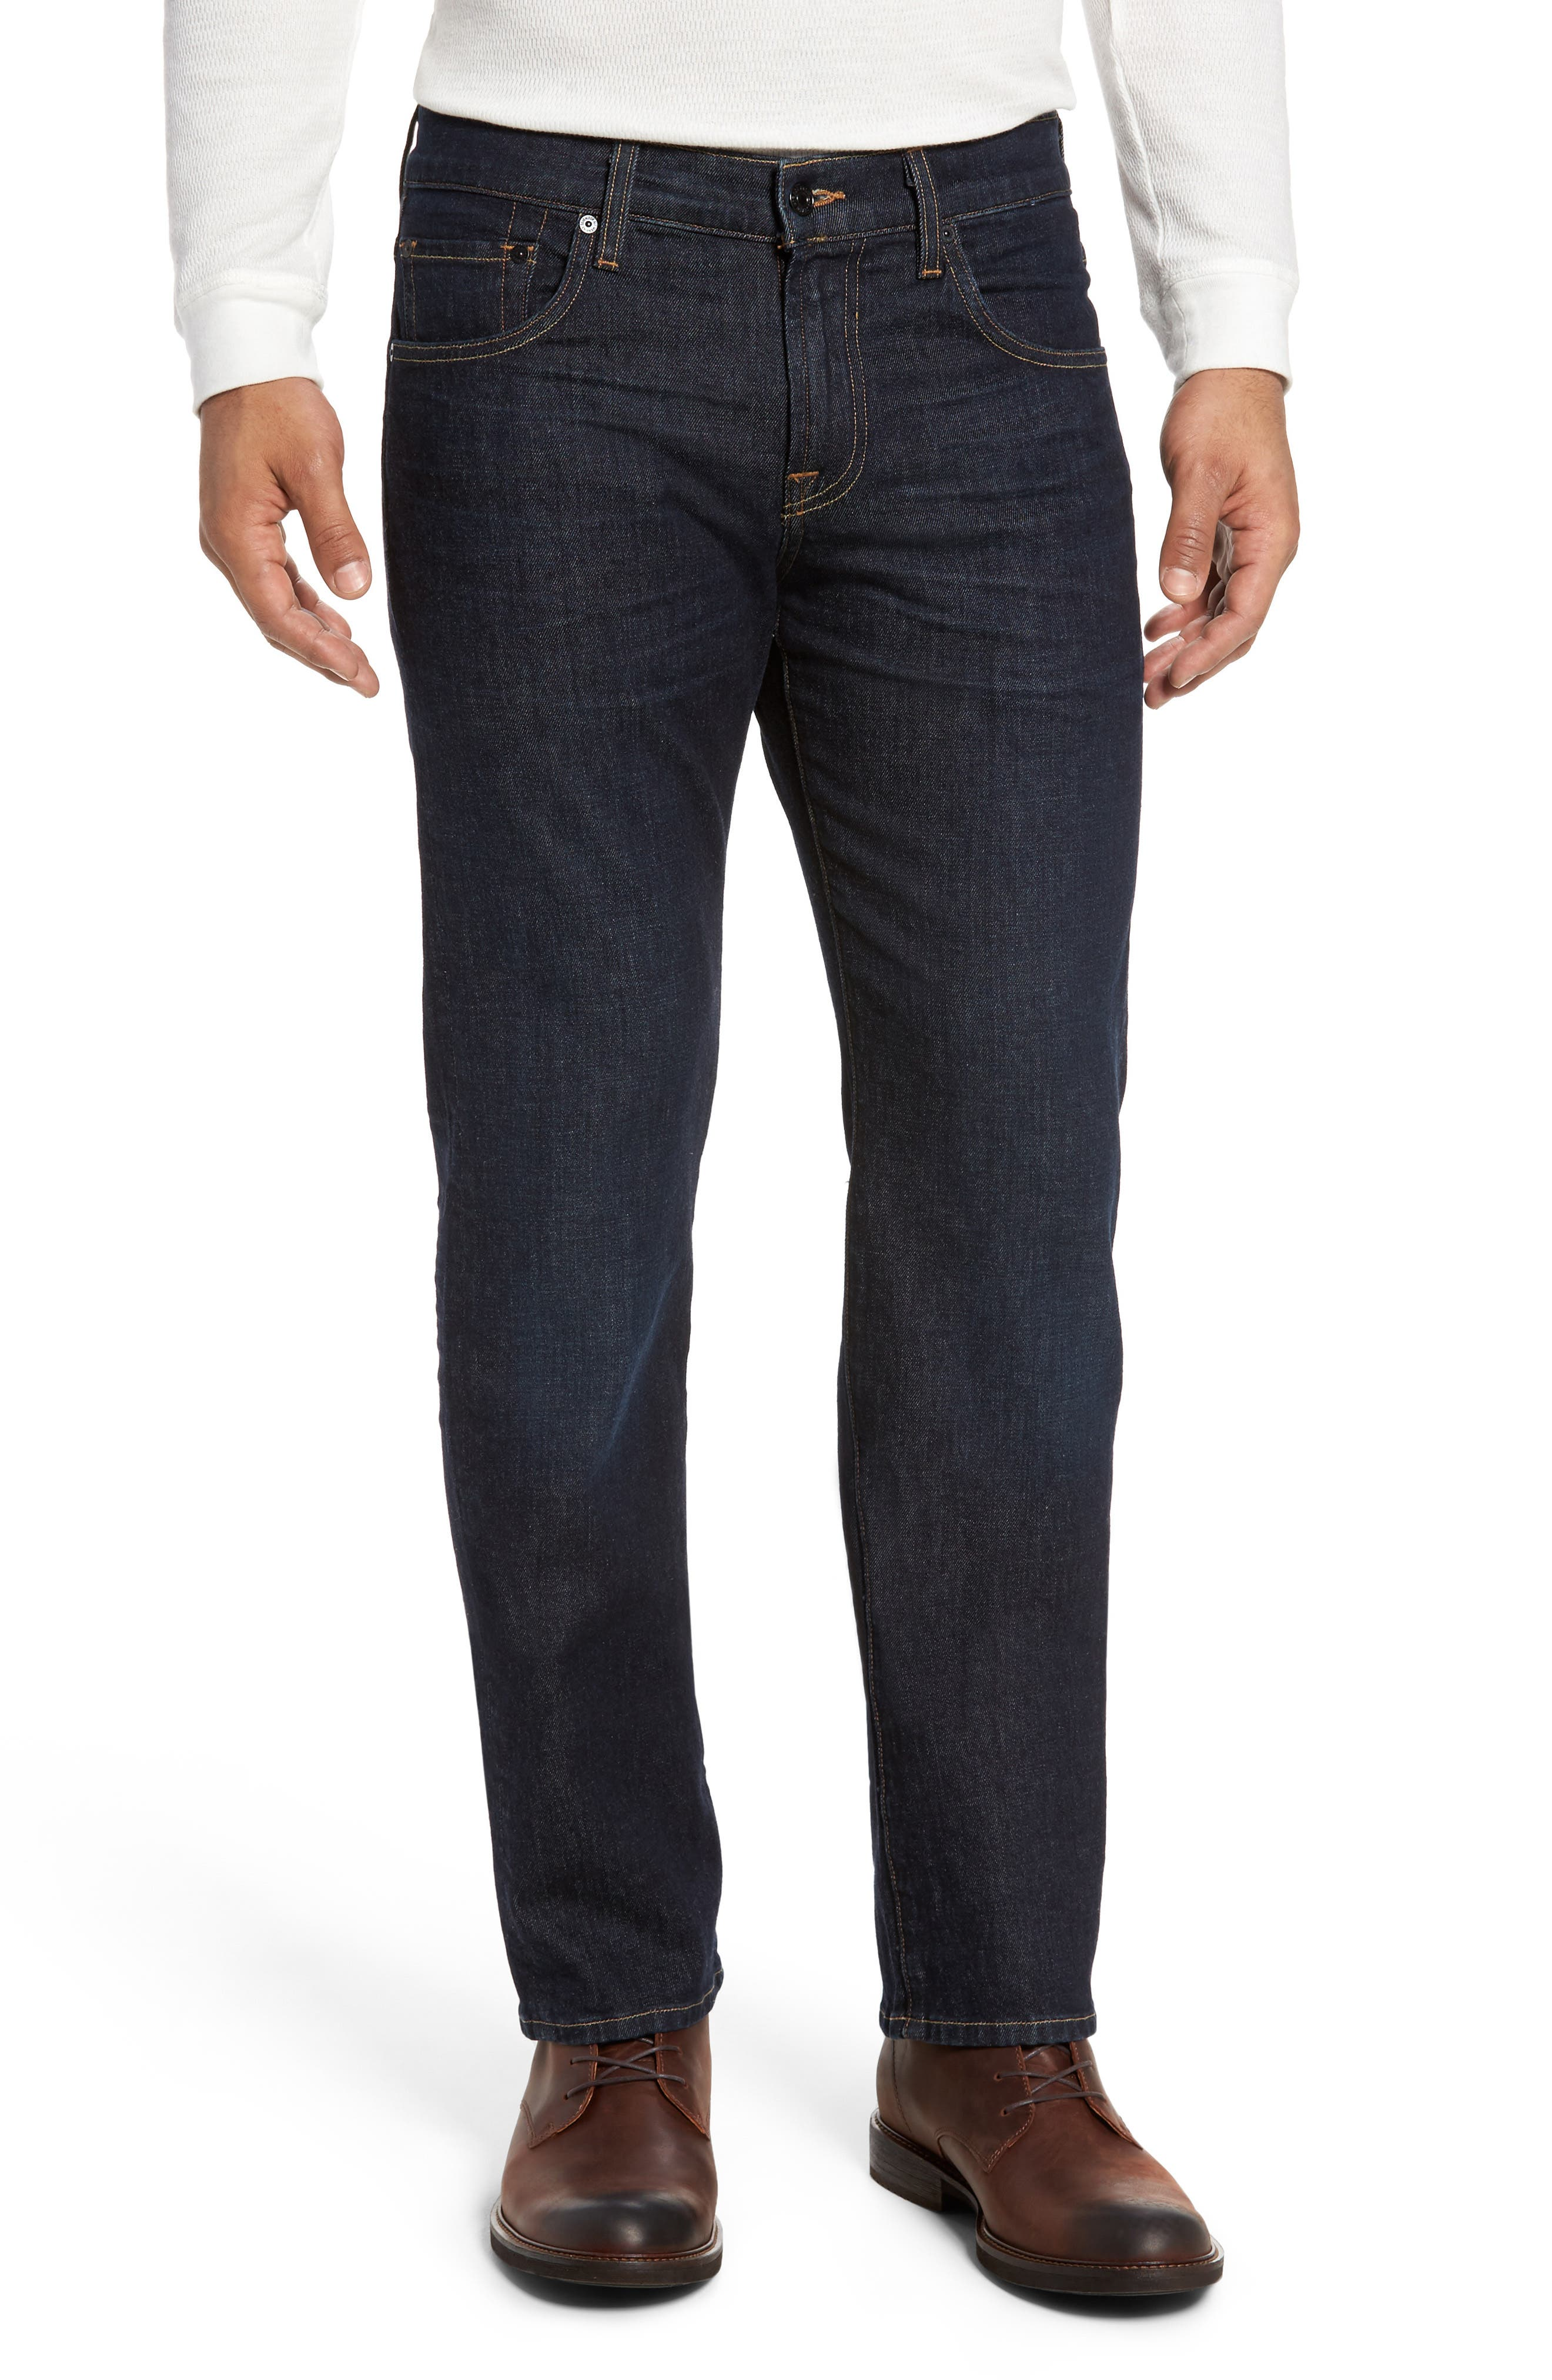 Austyn Relaxed Fit Jeans,                             Main thumbnail 1, color,                             Codec